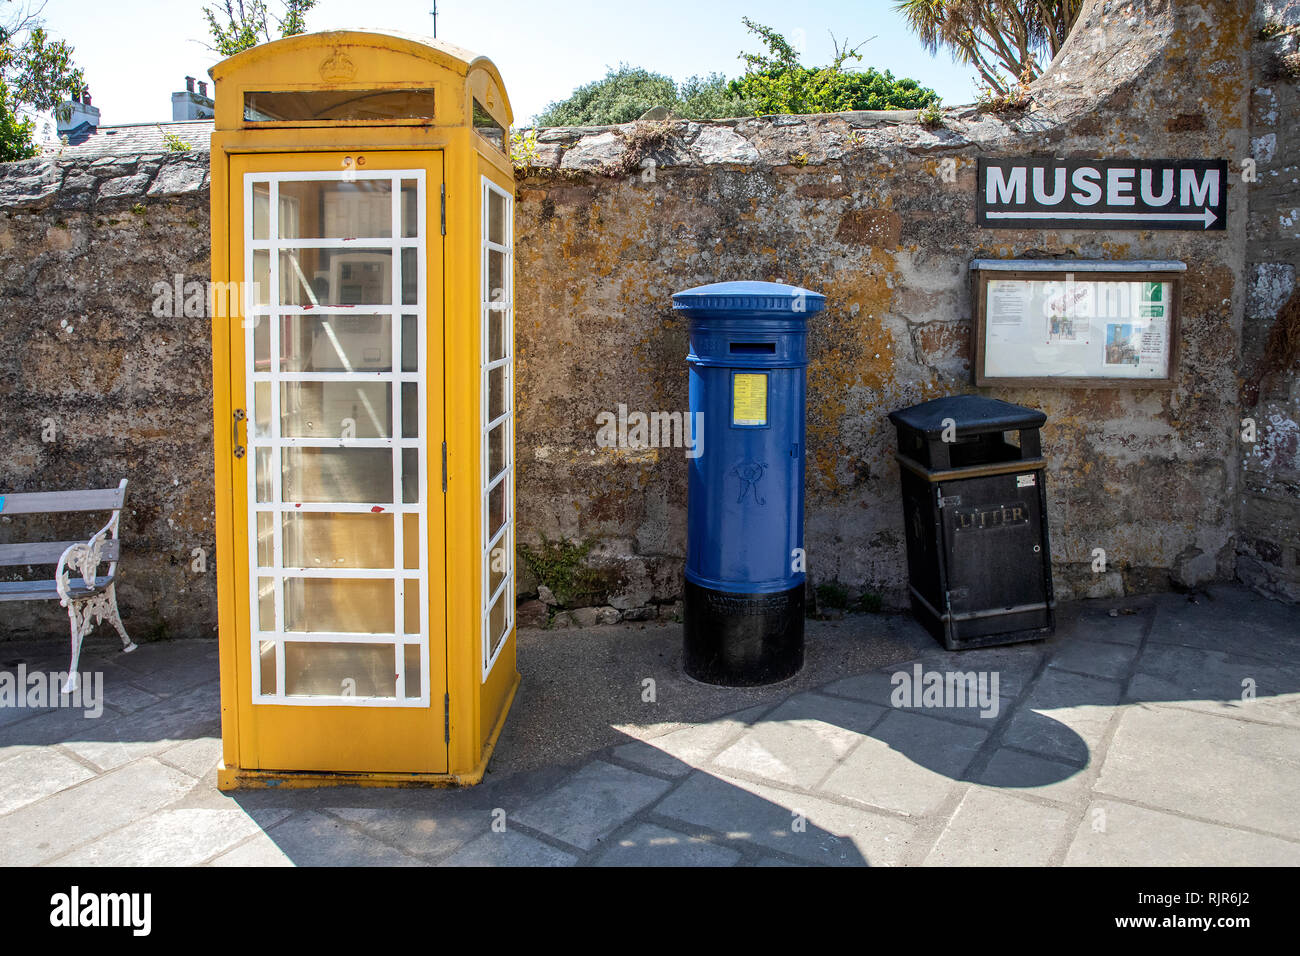 Telephone box and postbox by the museum entrance, top of the High Street, St Anne's, Alderney. - Stock Image